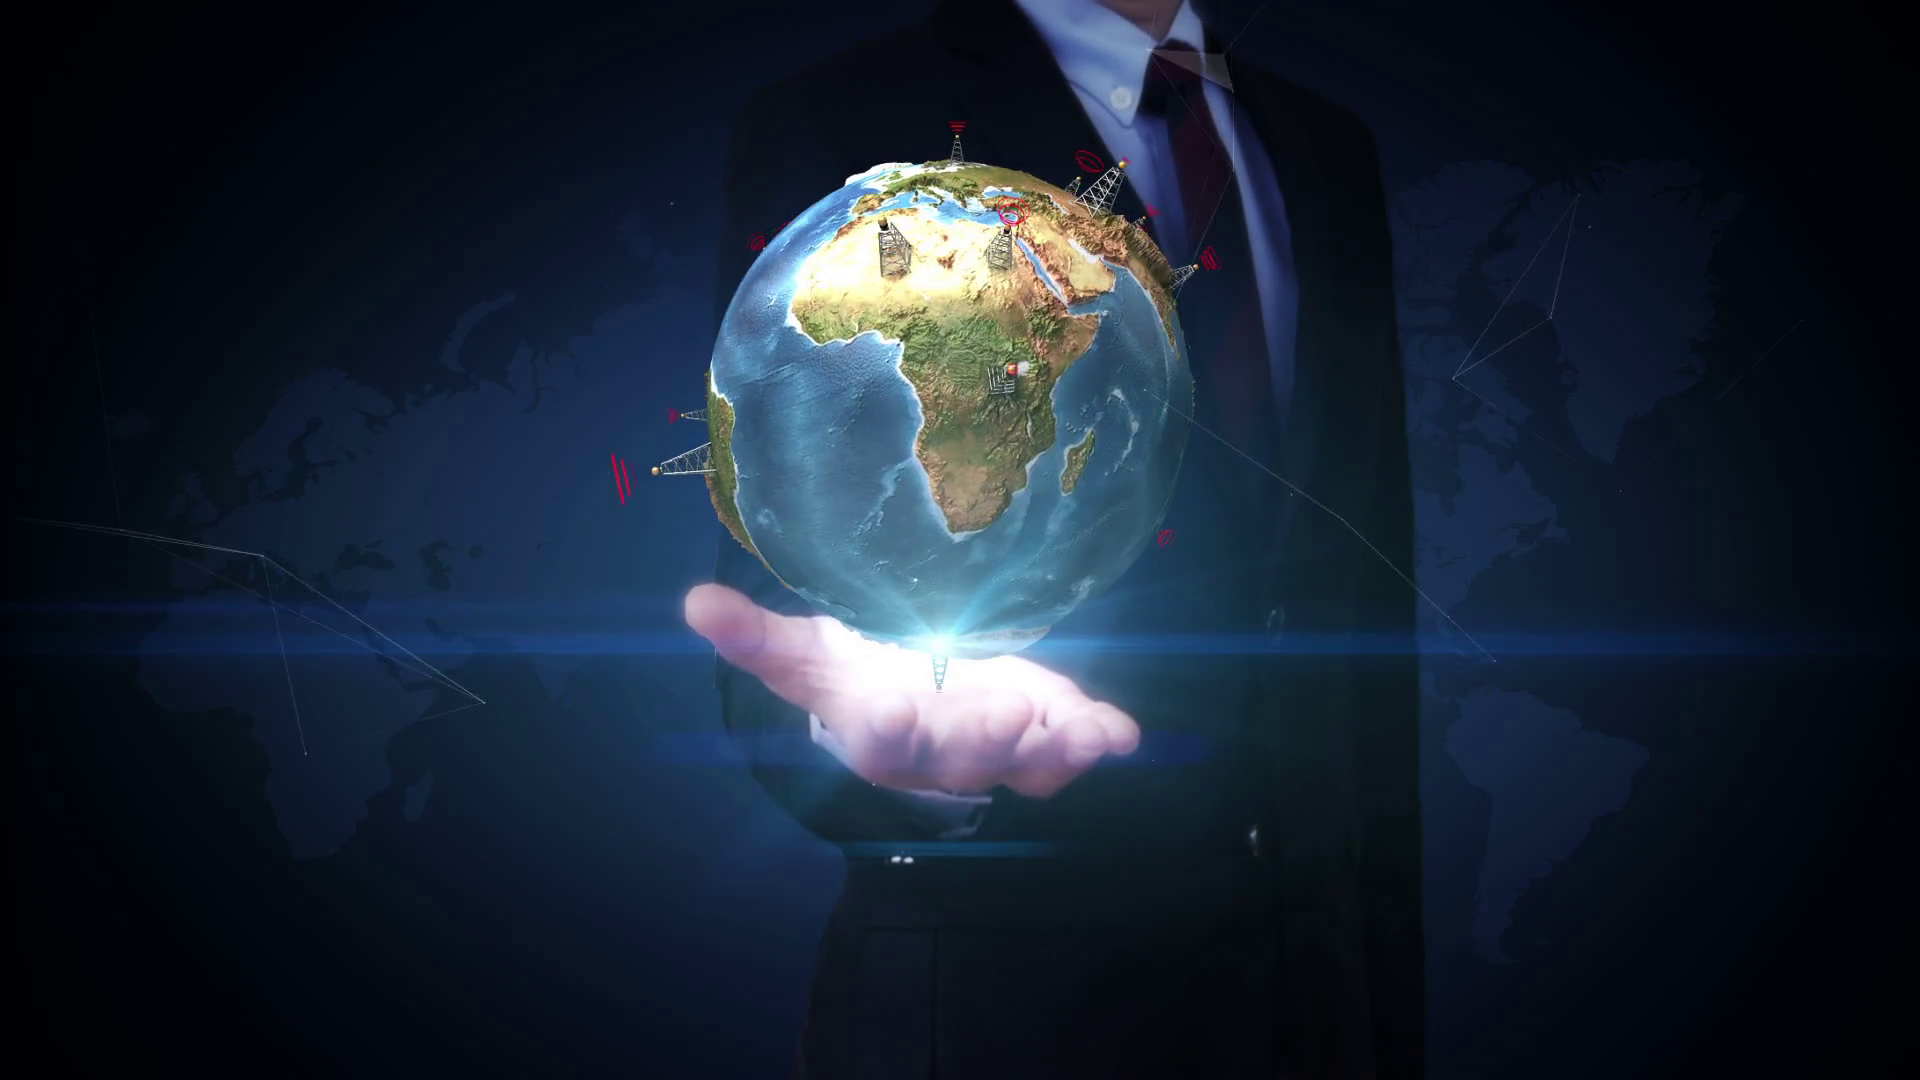 businessman-open-palm-rotating-earth-communication-technology-network-world-map_hdsaaz0il_thumbnail-full11